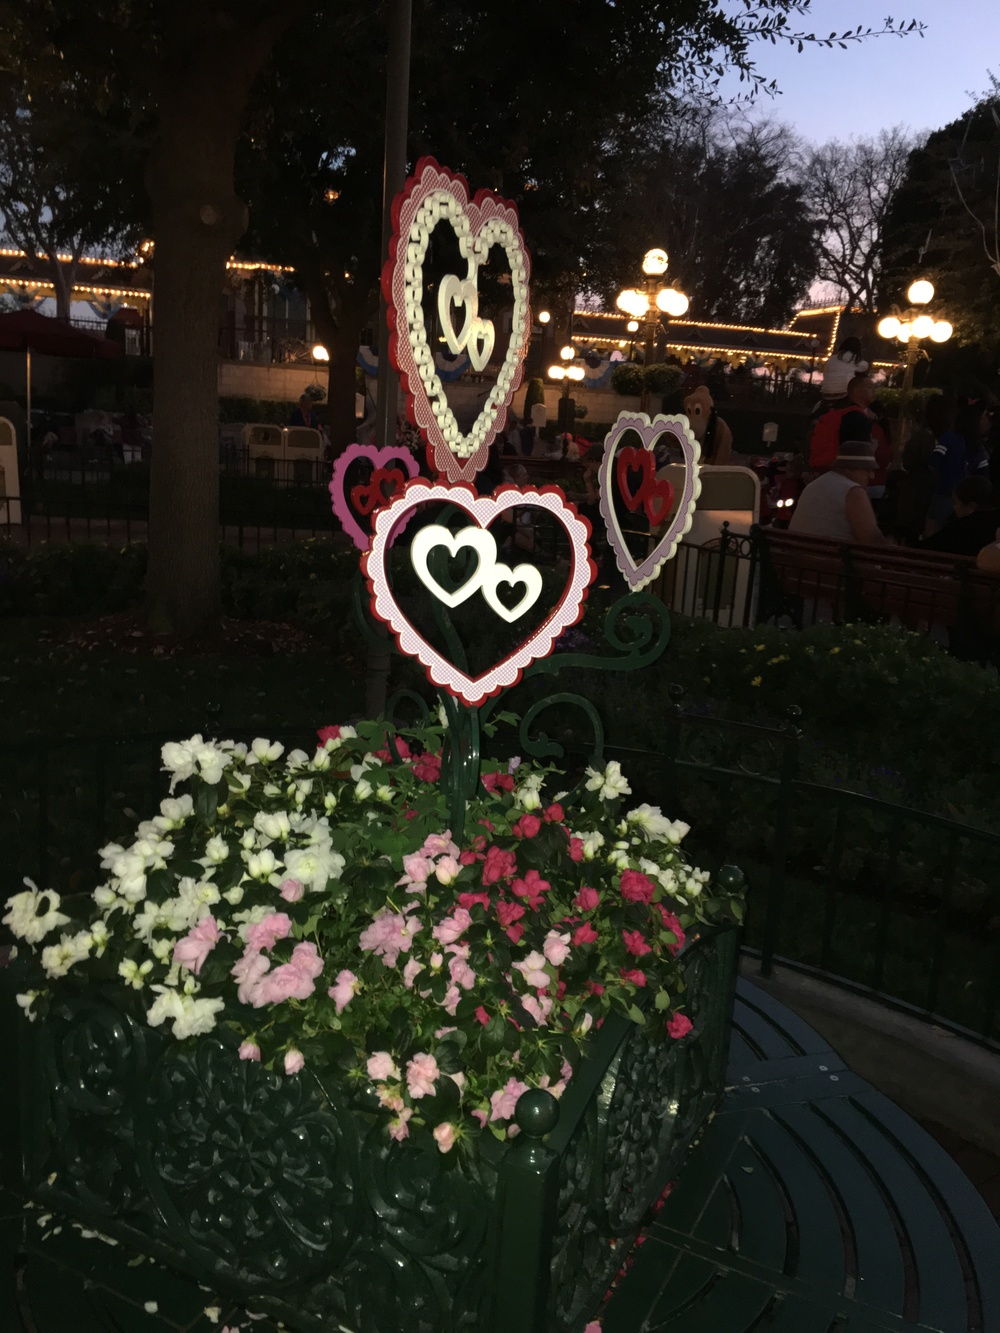 About the only of Valentine's decor located in Town Square